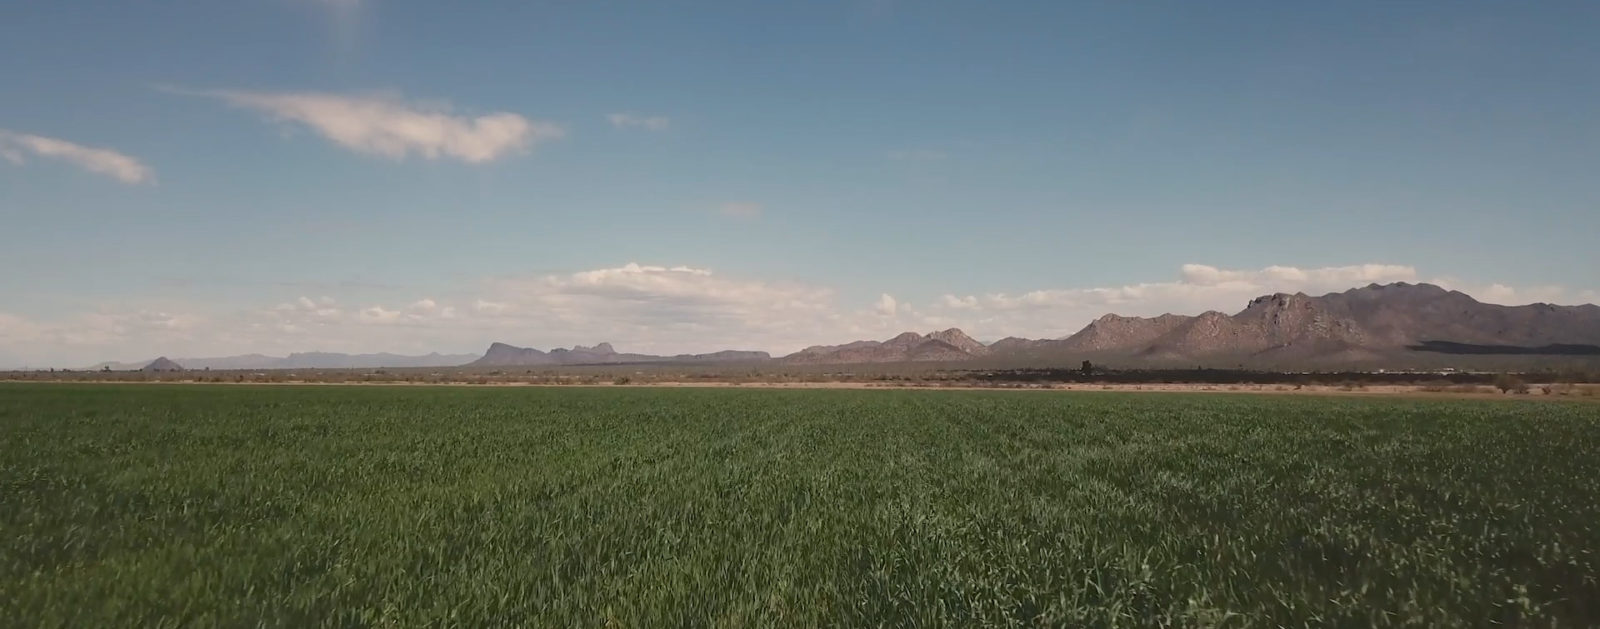 A wheat field in the Sonoran Desert